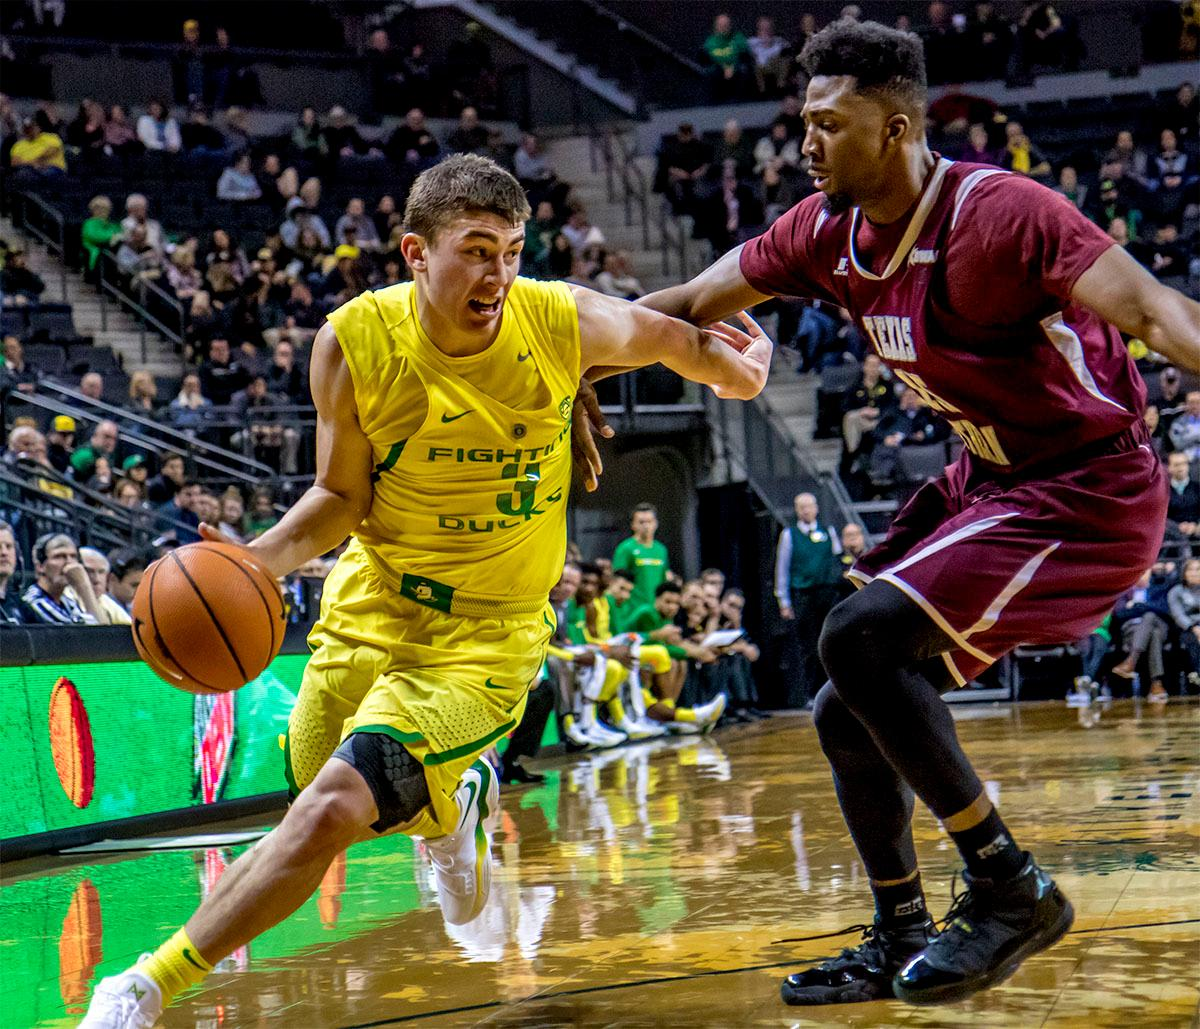 The Duck's Payton Pritchard (#3) looks for an opening past the Tigers. The Oregon Ducks defeated Texas Southern Tigers 74-68. The Ducks are now 7-3 overall in the Pac-12. Photo by August Frank. Oregon News Lab